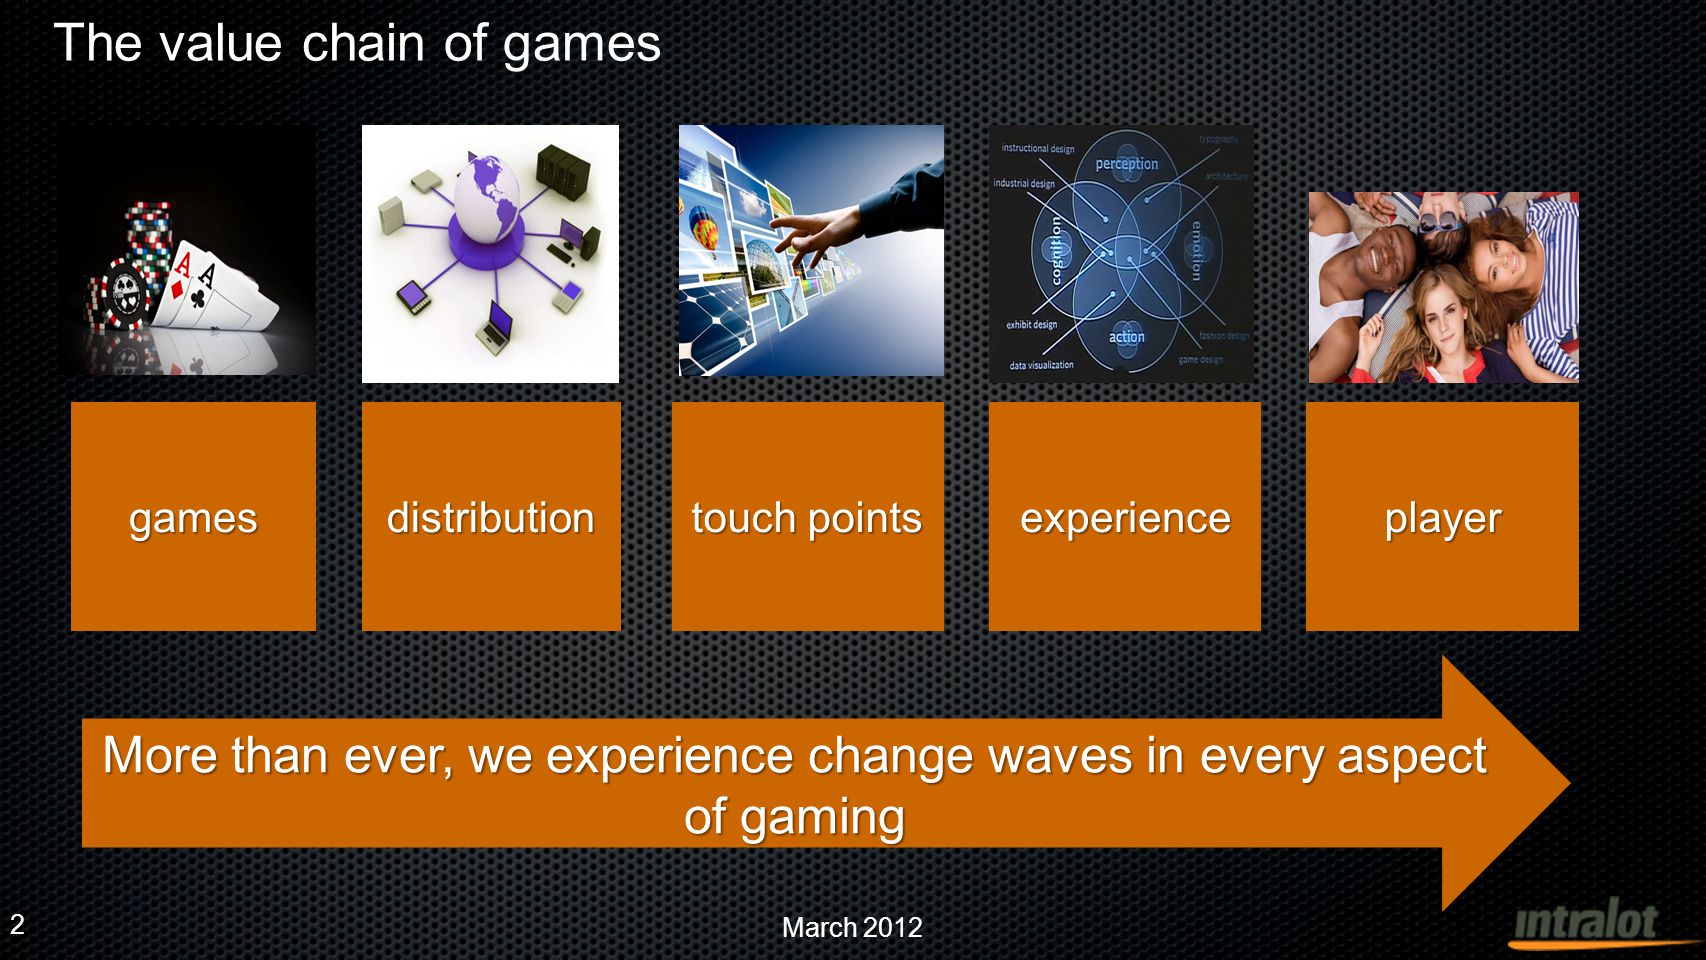 March 2012 Six areas to excel | multiple customer touch points Six areas to excel | multiple customer touch points AgilityAgility Customer Engagement Customer Engagement Customer Acquisition Customer Acquisition Customer reach Rich Content Rich Content PlatformPlatform OperationsOperations Marketing Marketing DistributionDistribution GamesGames BrandBrand Awareness & Promotion Awareness & Promotion We invest in..